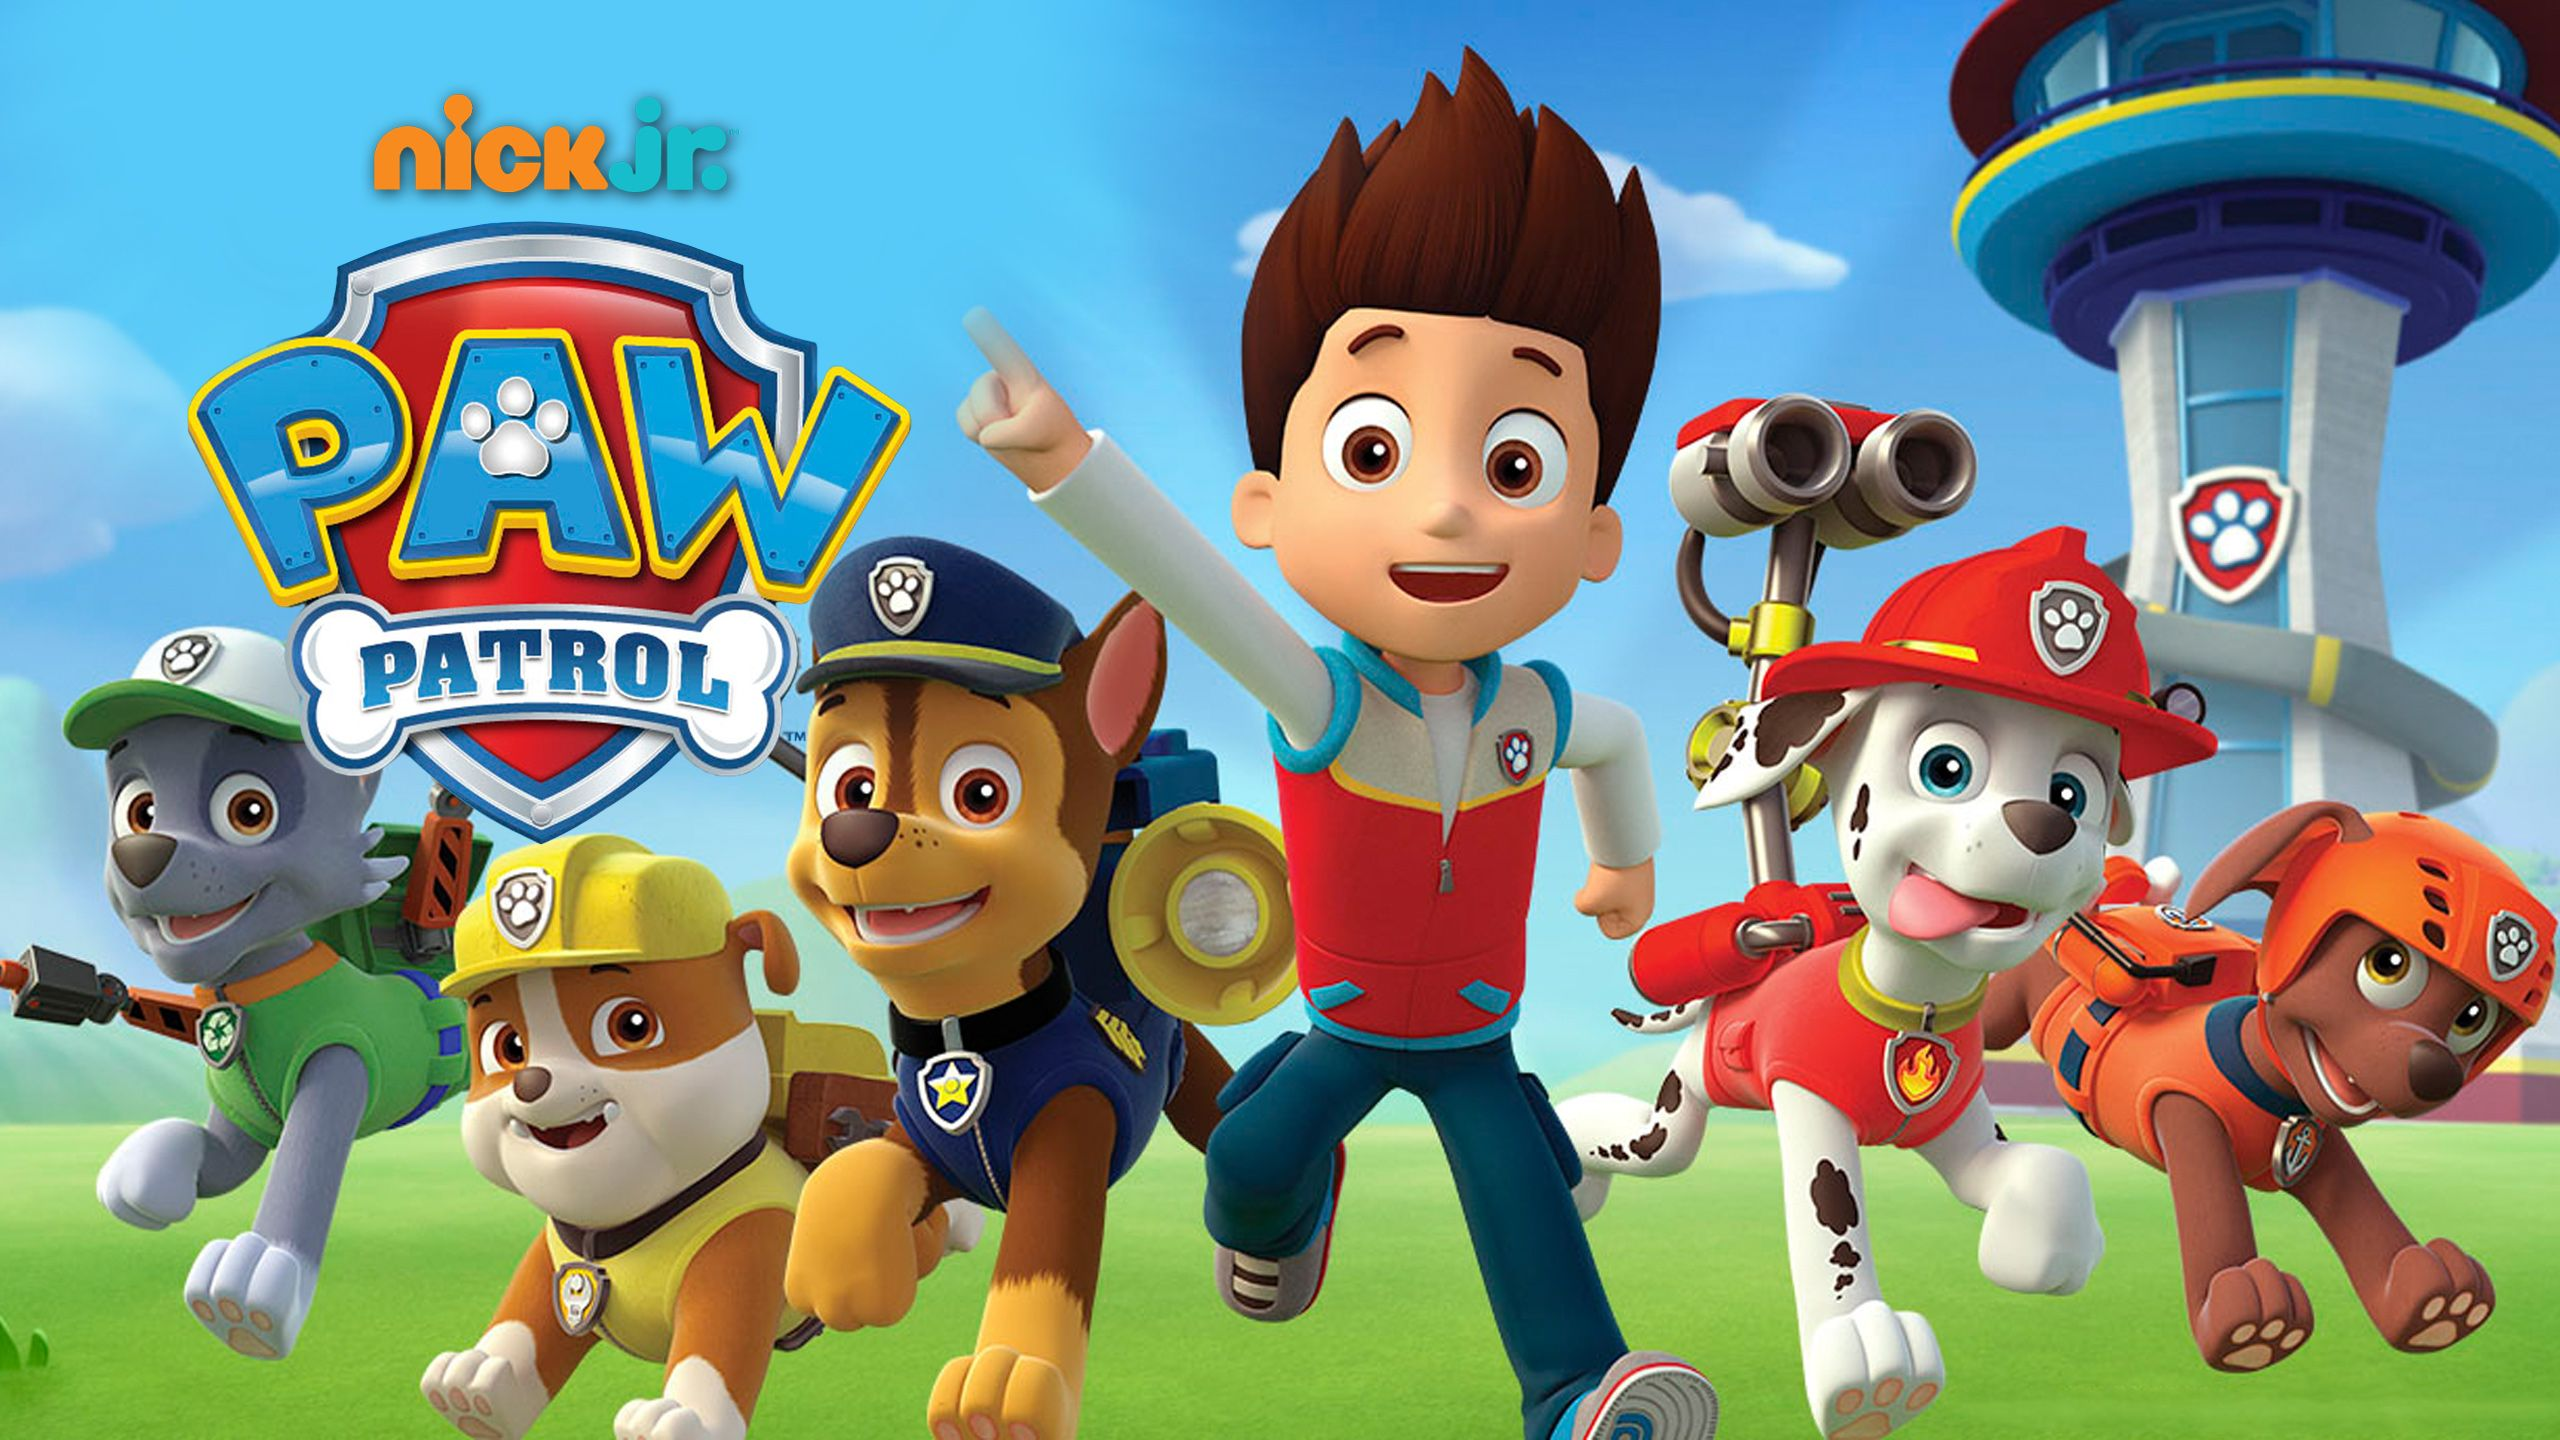 paw patrol birthday wallpaper ; 9c2407b013acfc7ed6beb06031419846